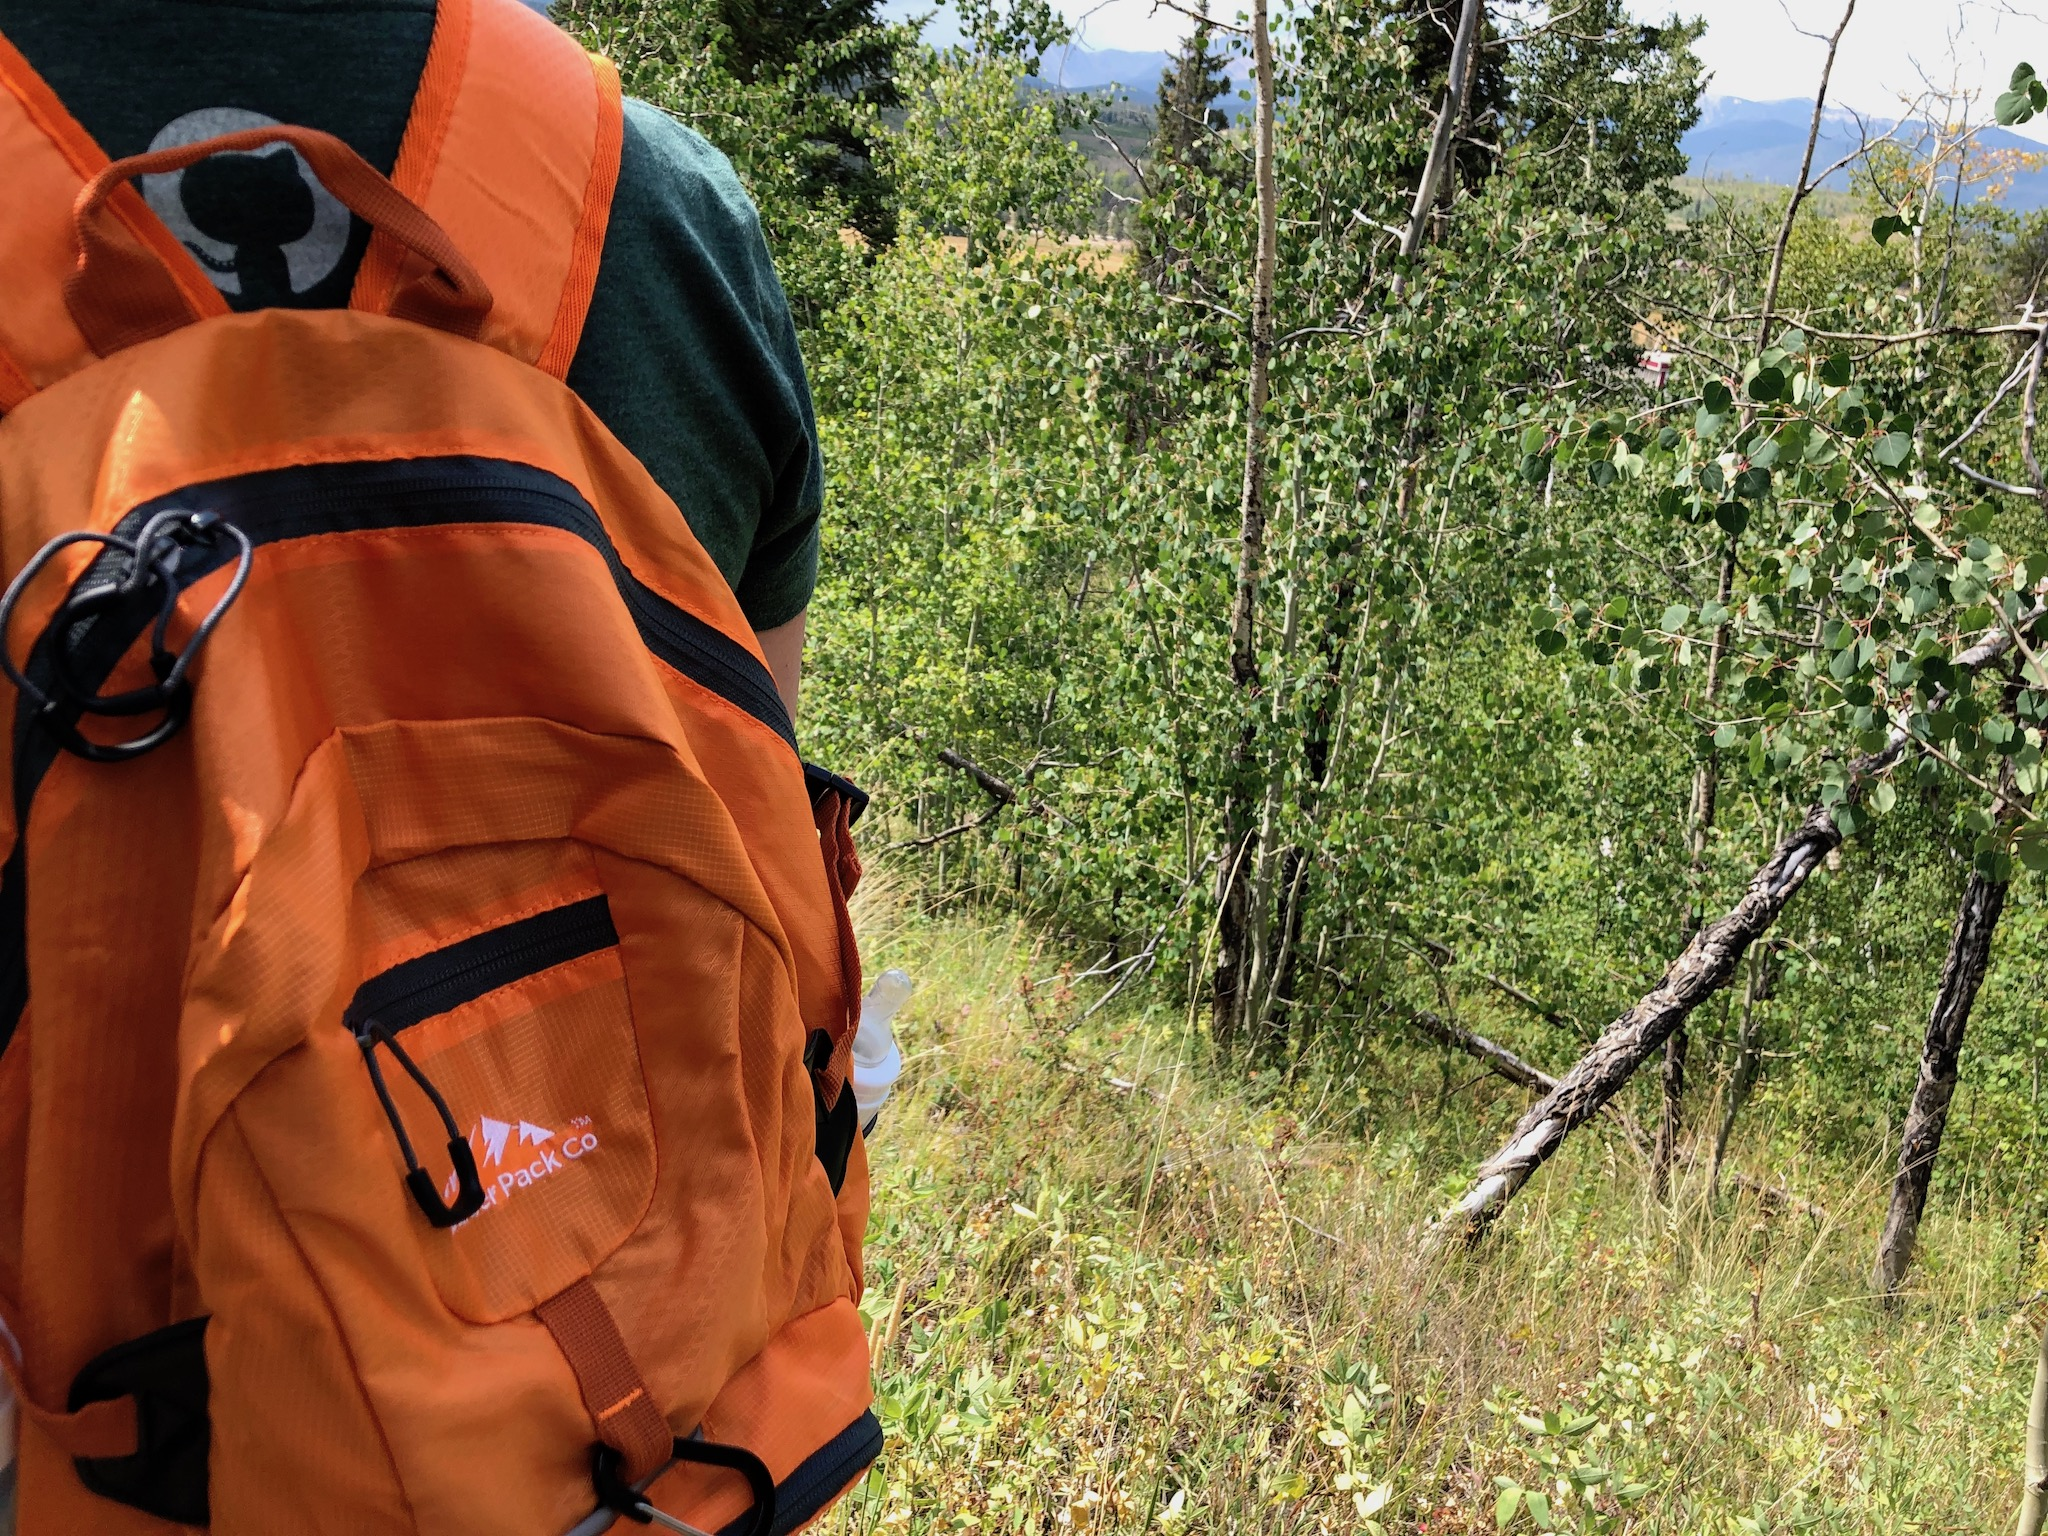 Boulder Pack Co  folding backpack works great on the hill, packs up